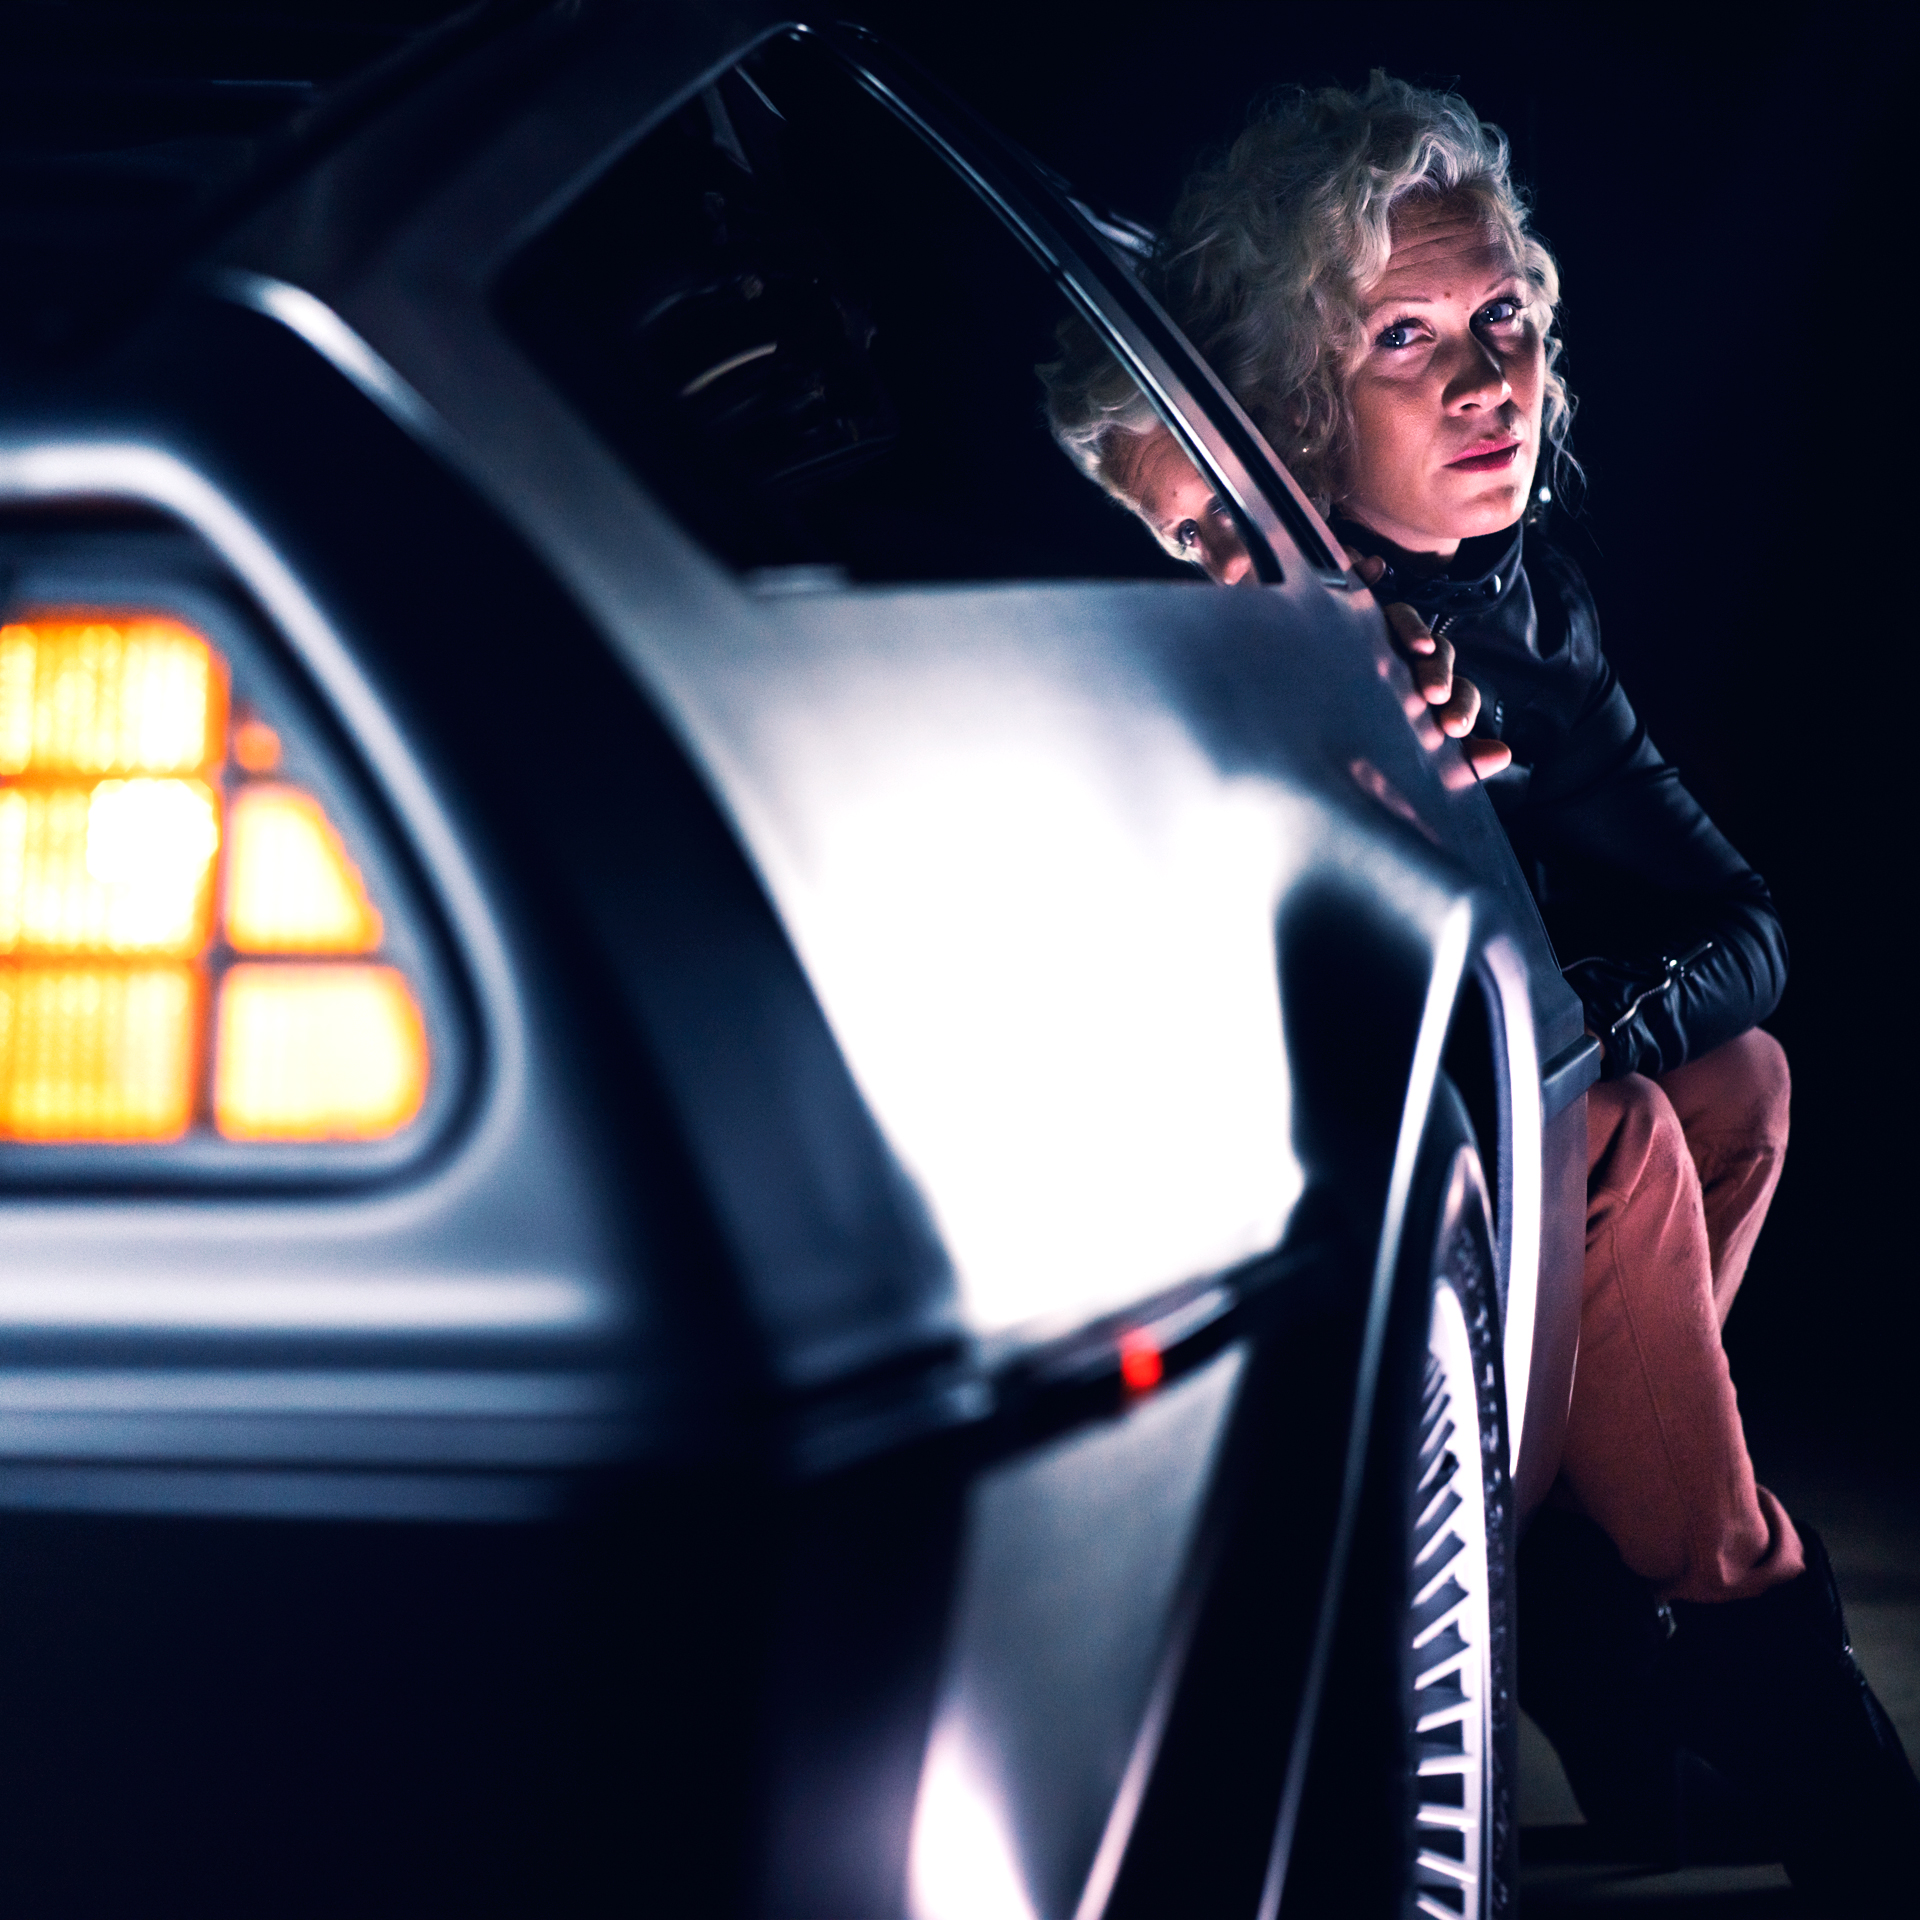 Anna Sköld sitting in a DeLorean